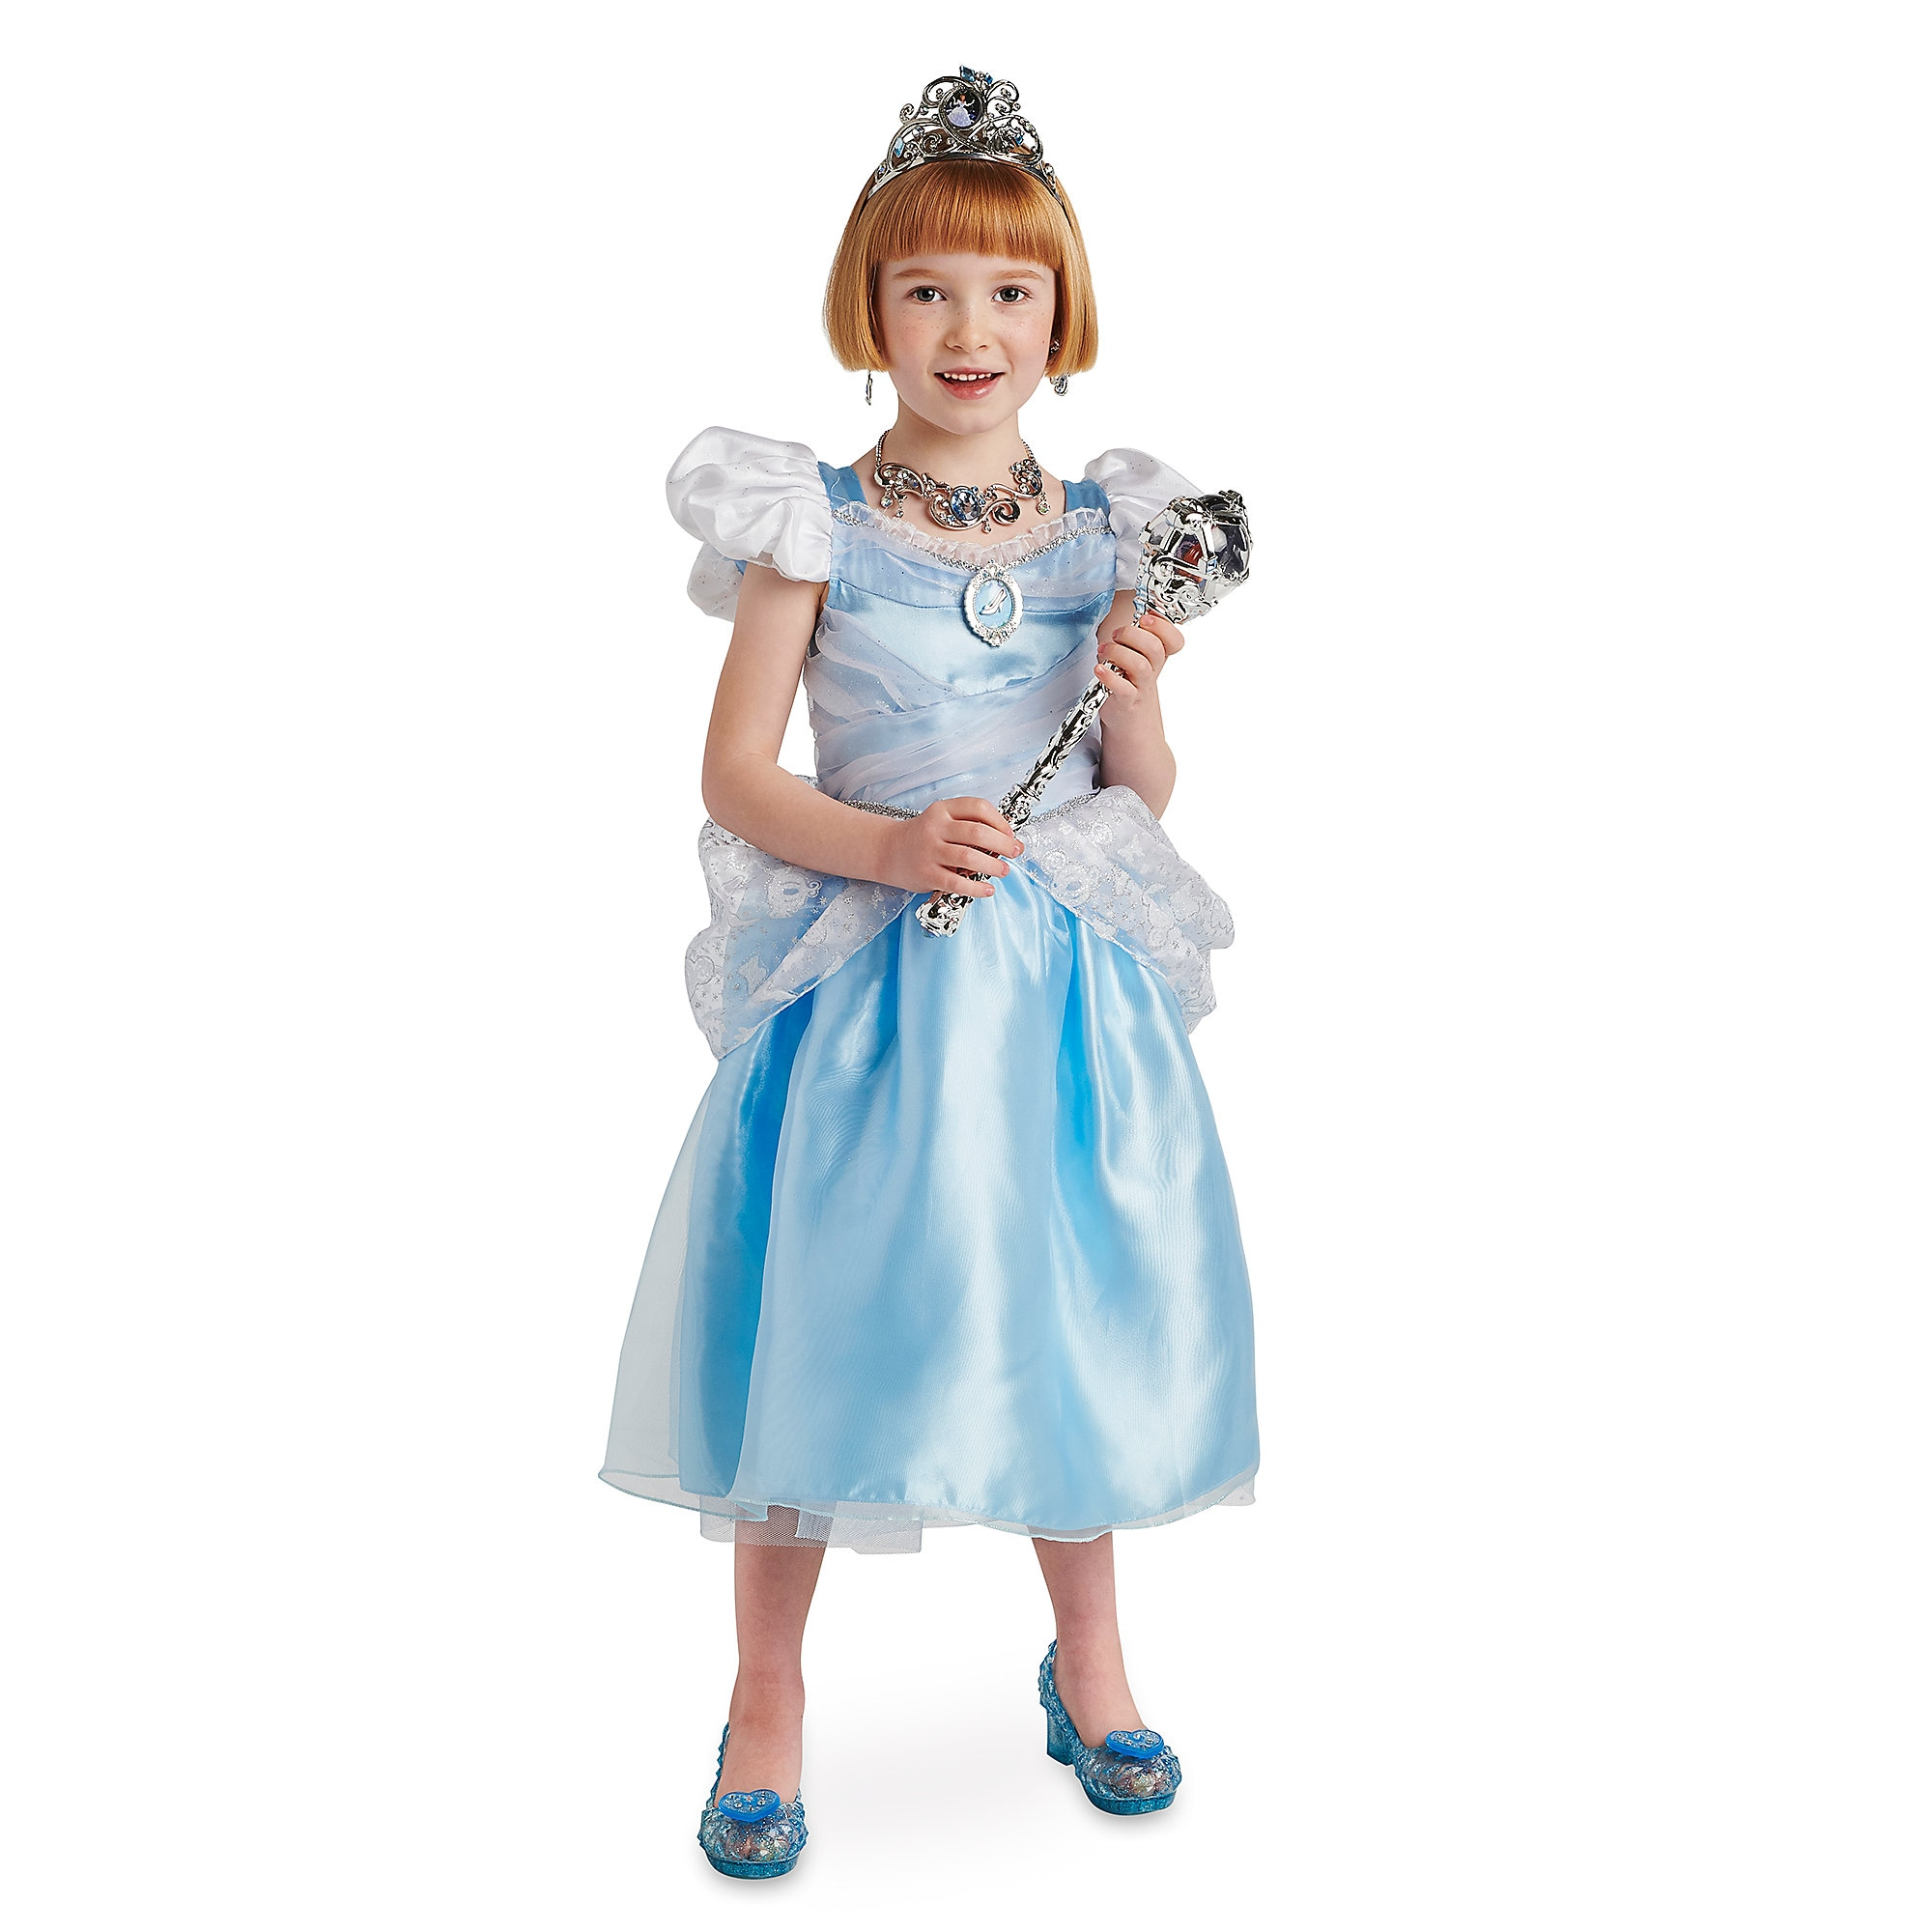 Exceptional Product Image Of Cinderella Costume Collection For Kids # 1